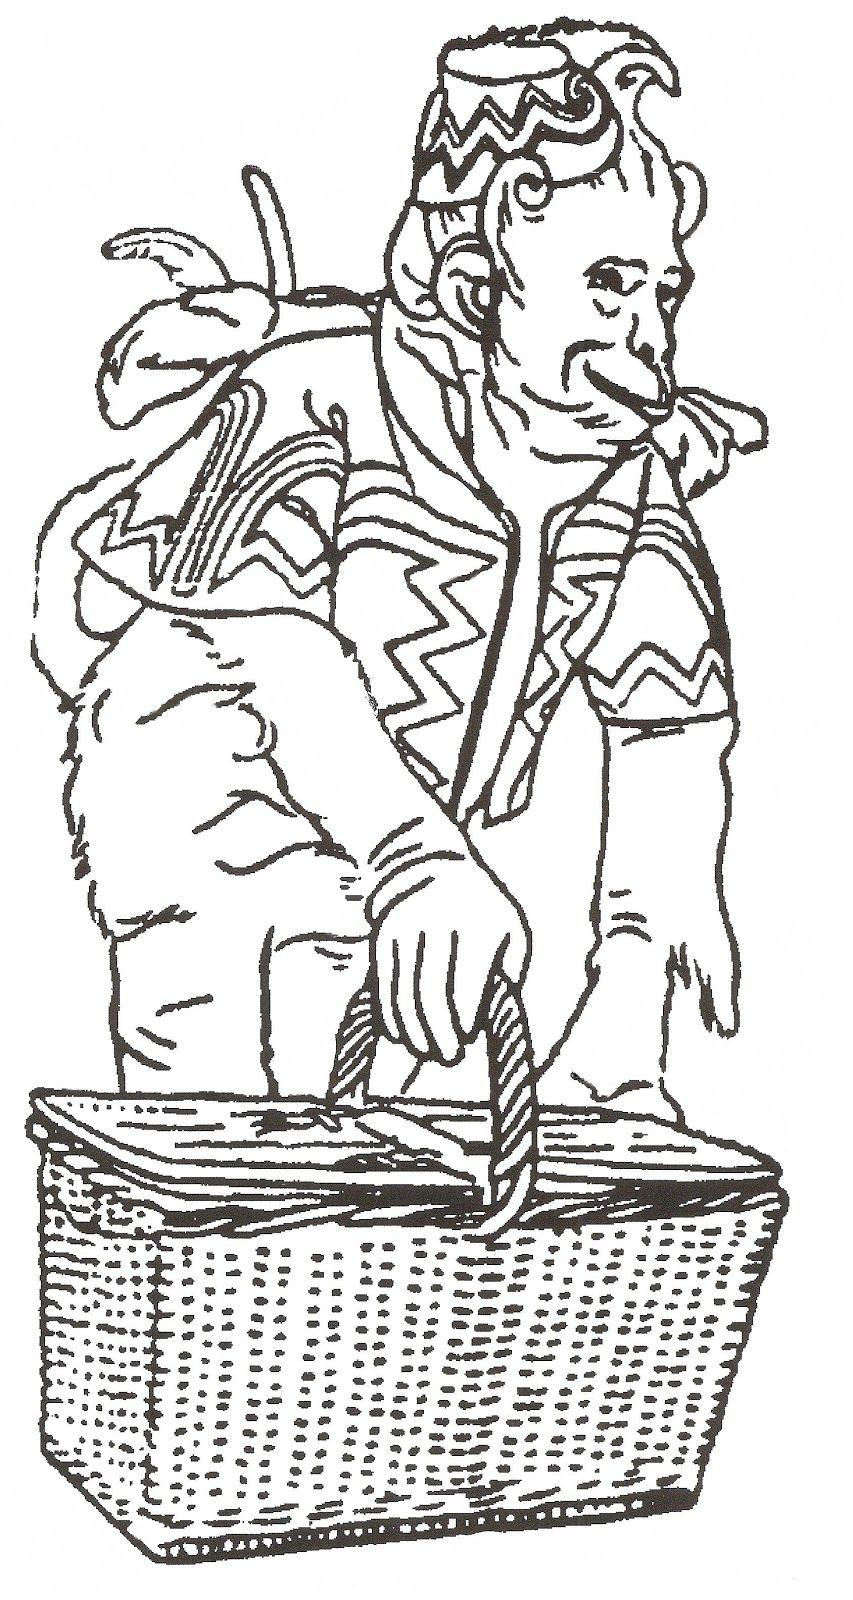 Monkeys From Wizard of Oz Coloring Page | Beware of Flying Monkeys ...